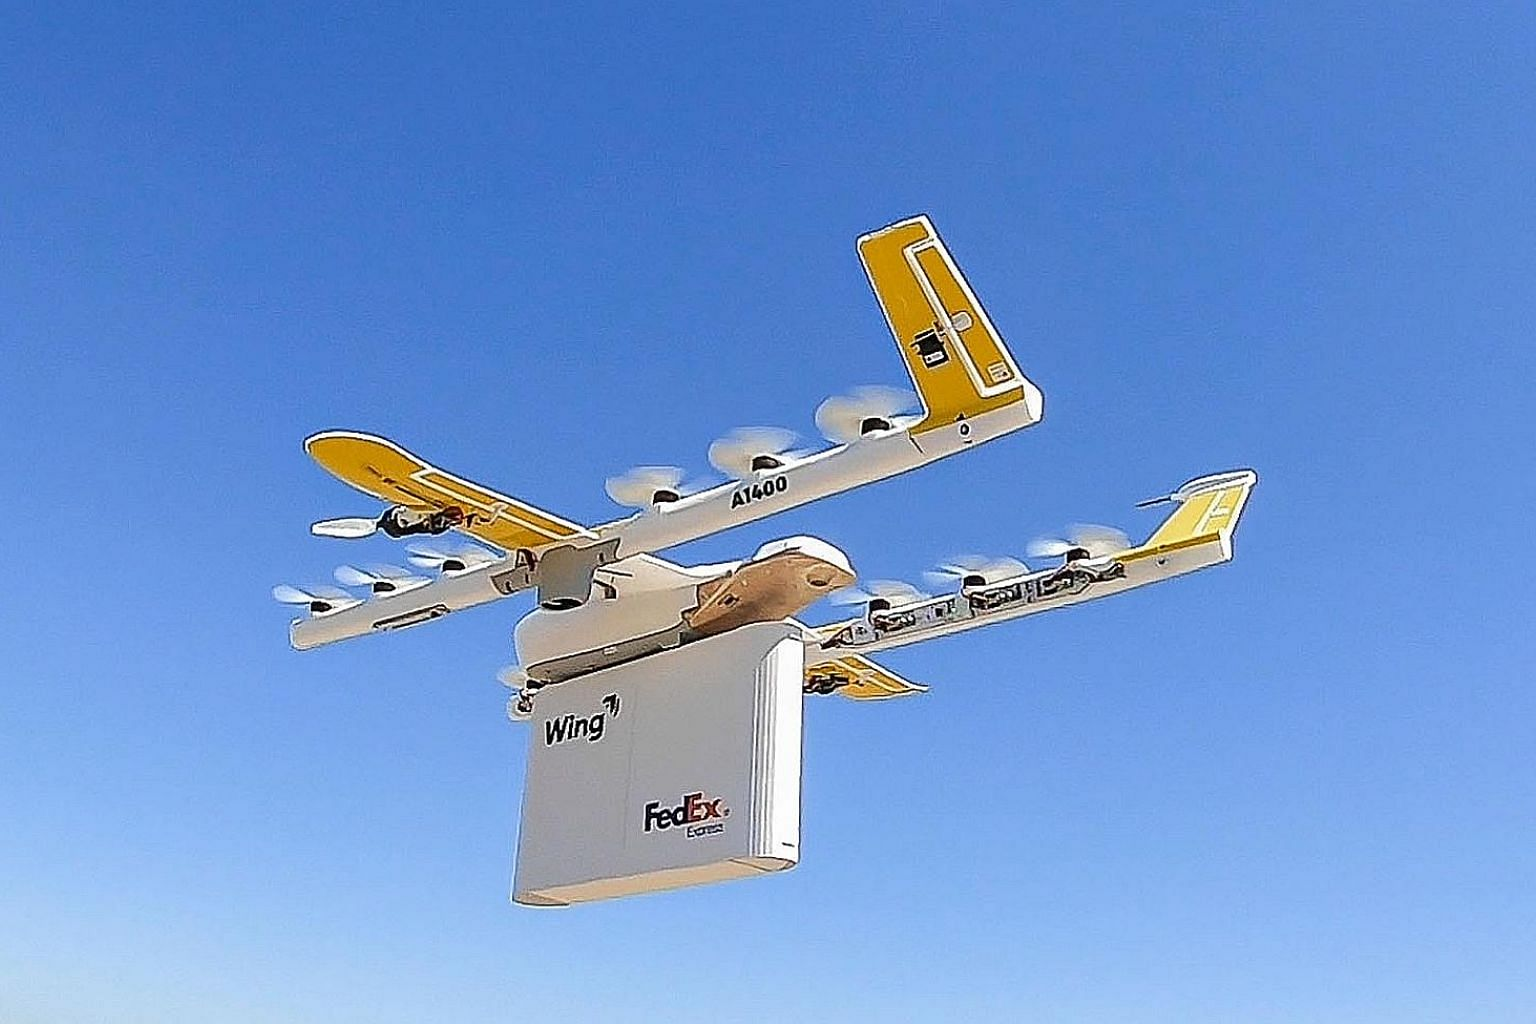 Once a drone arrives at its destination, it hovers above the house and lowers the package with a cable.